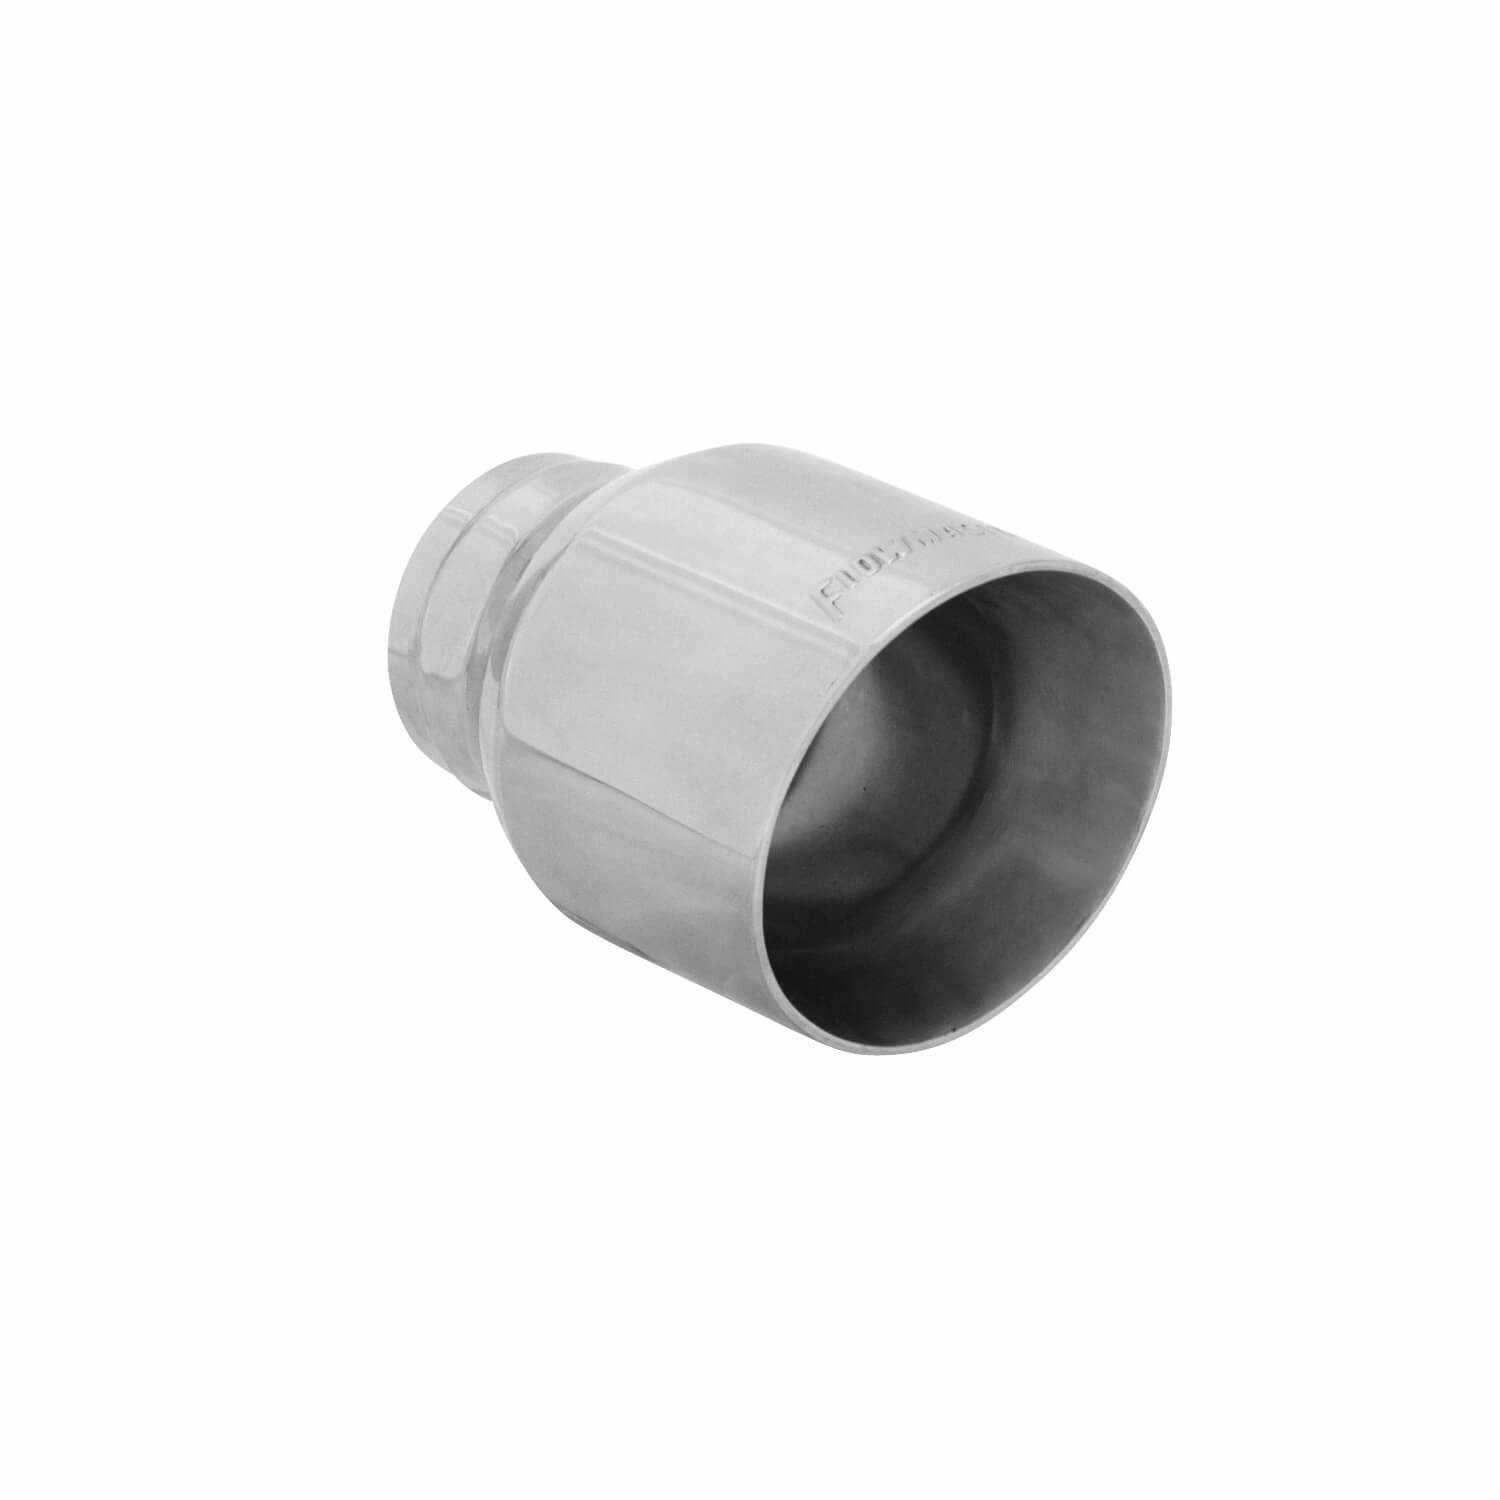 Flowmaster Stainless Steel Exhaust Tip 15395